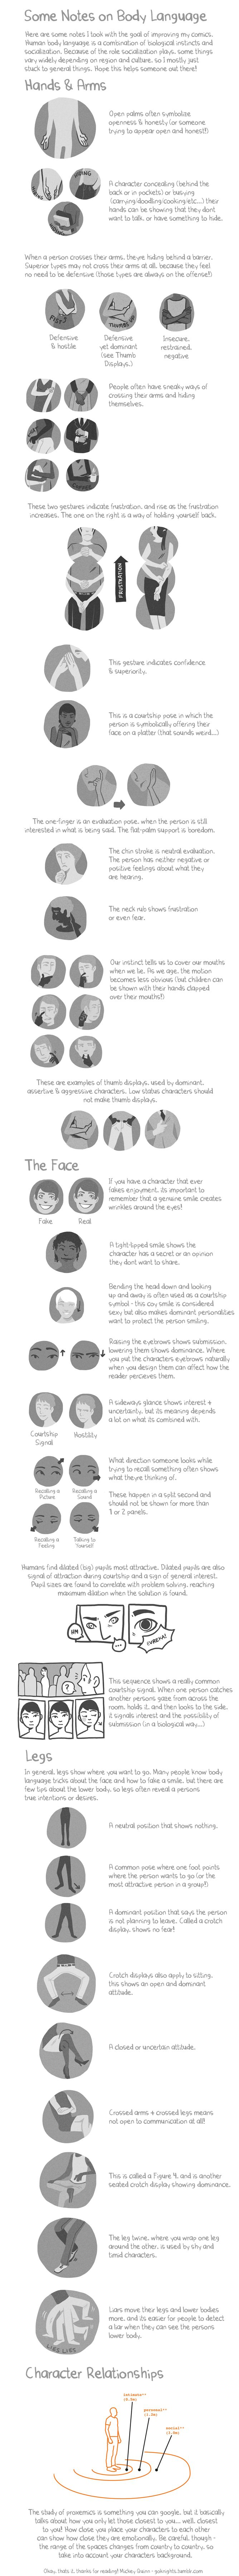 Body Language Reference Sheet - Writers Write- A form of language that is rarely taught outright, and could be helpful for kids who have difficulty with social cues.